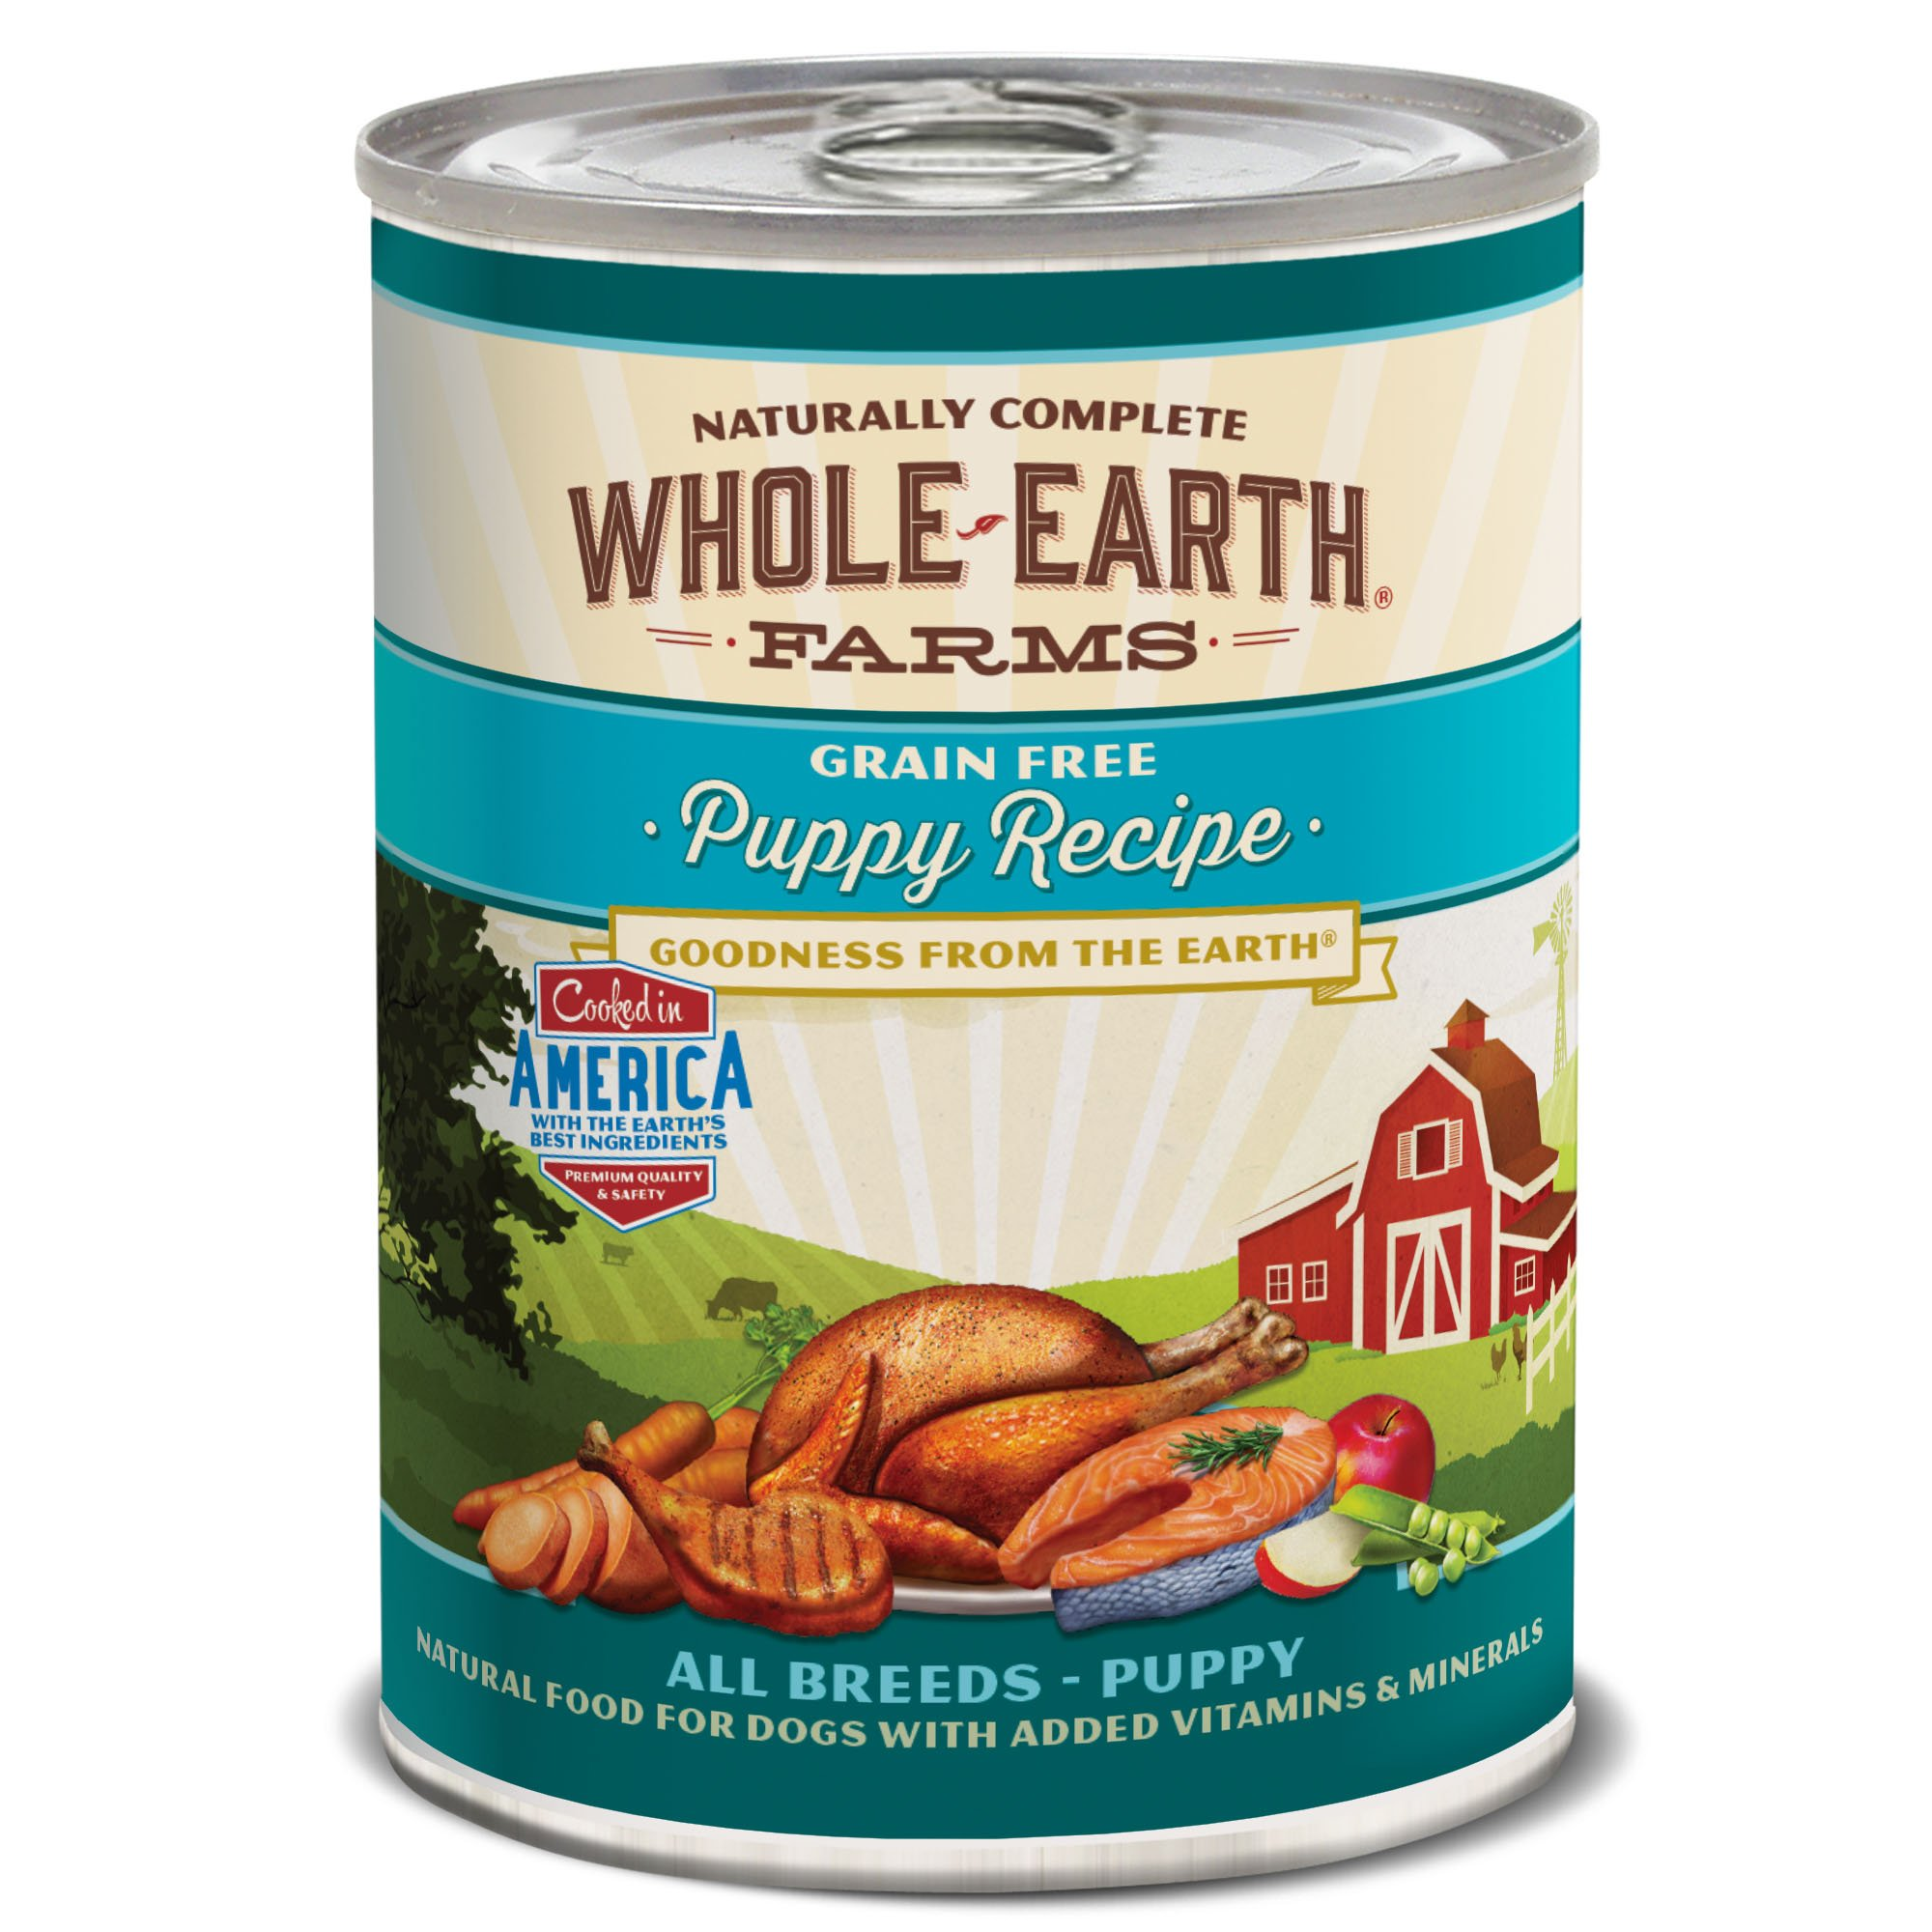 Whole Earth Farms Grain Free Canned Puppy Food